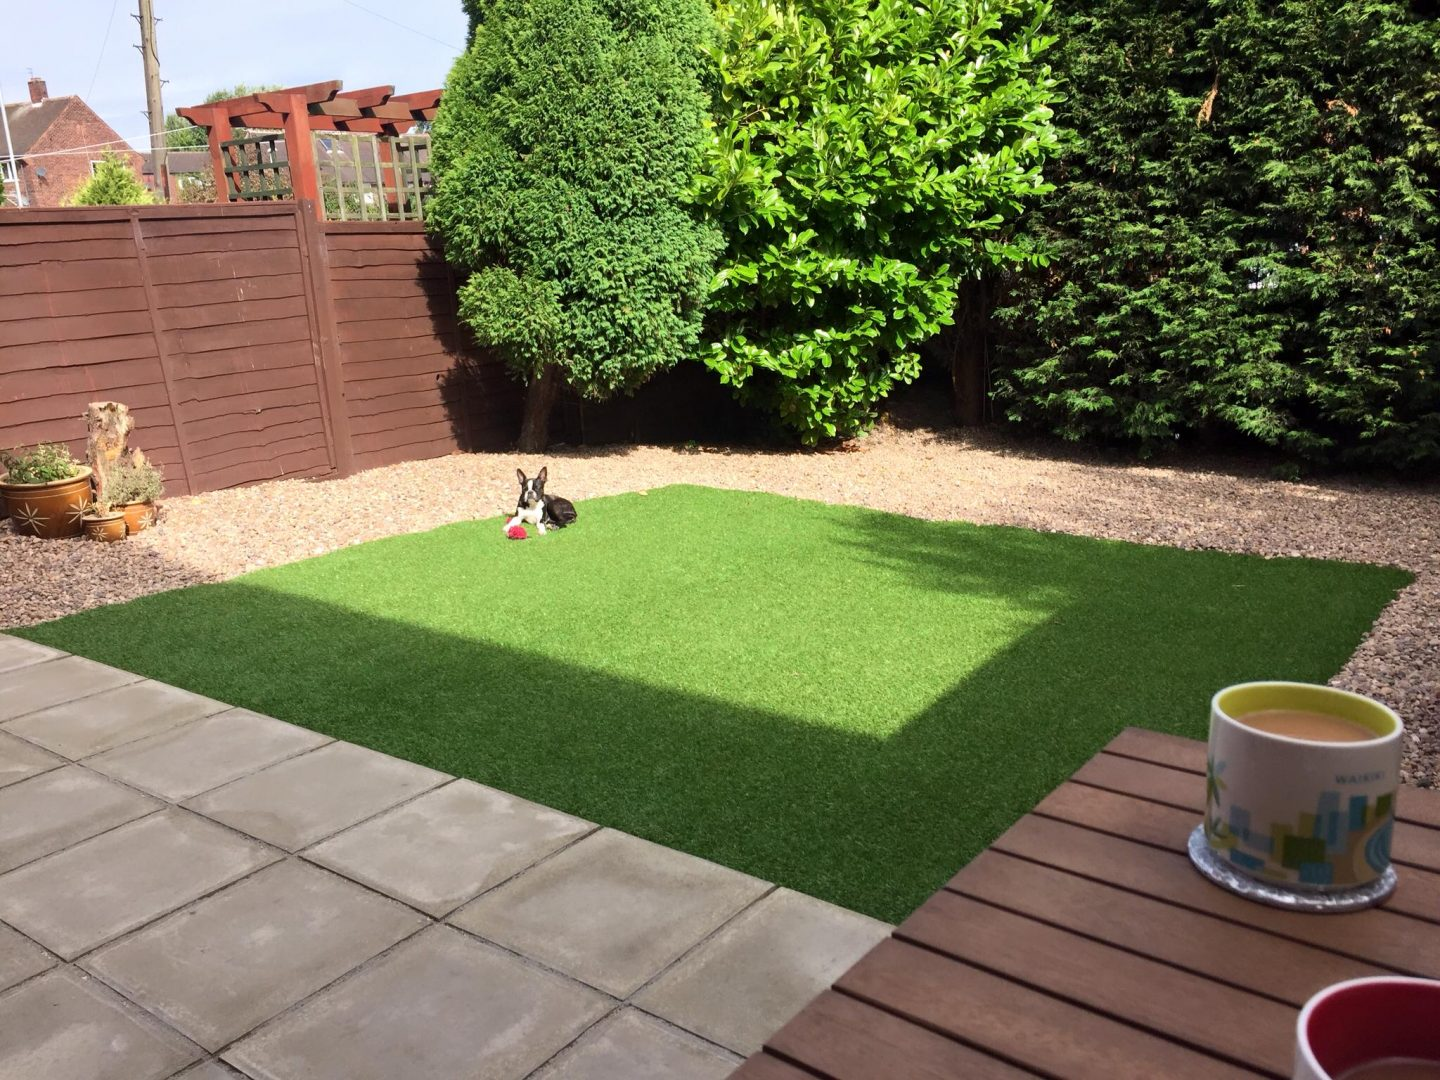 The green, green artificial grass of home